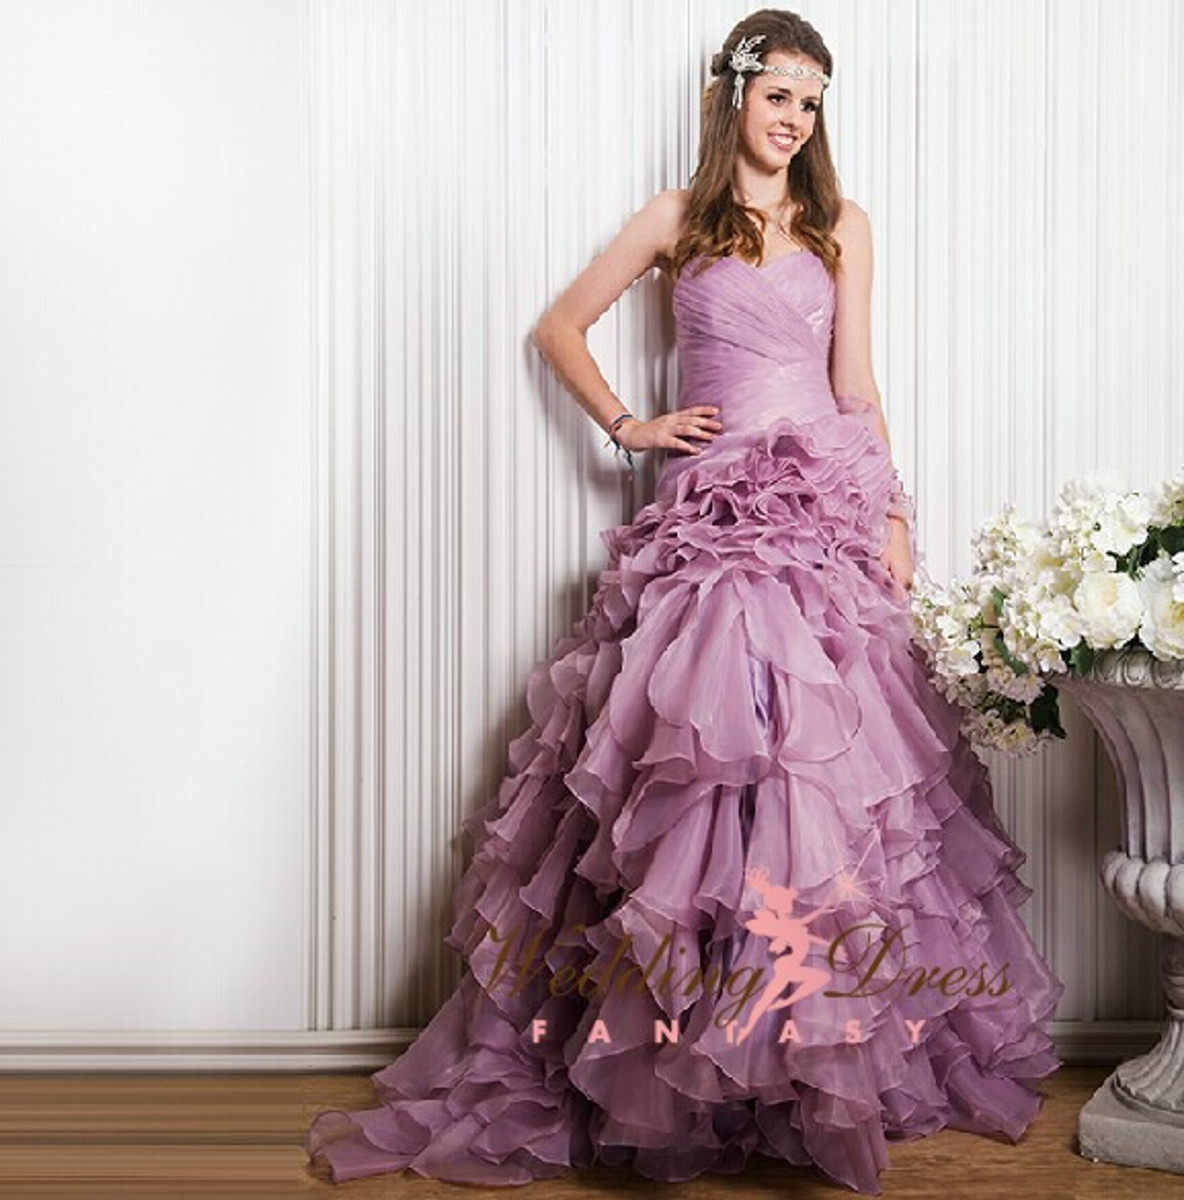 lilac wedding dress wedding dress fantasy